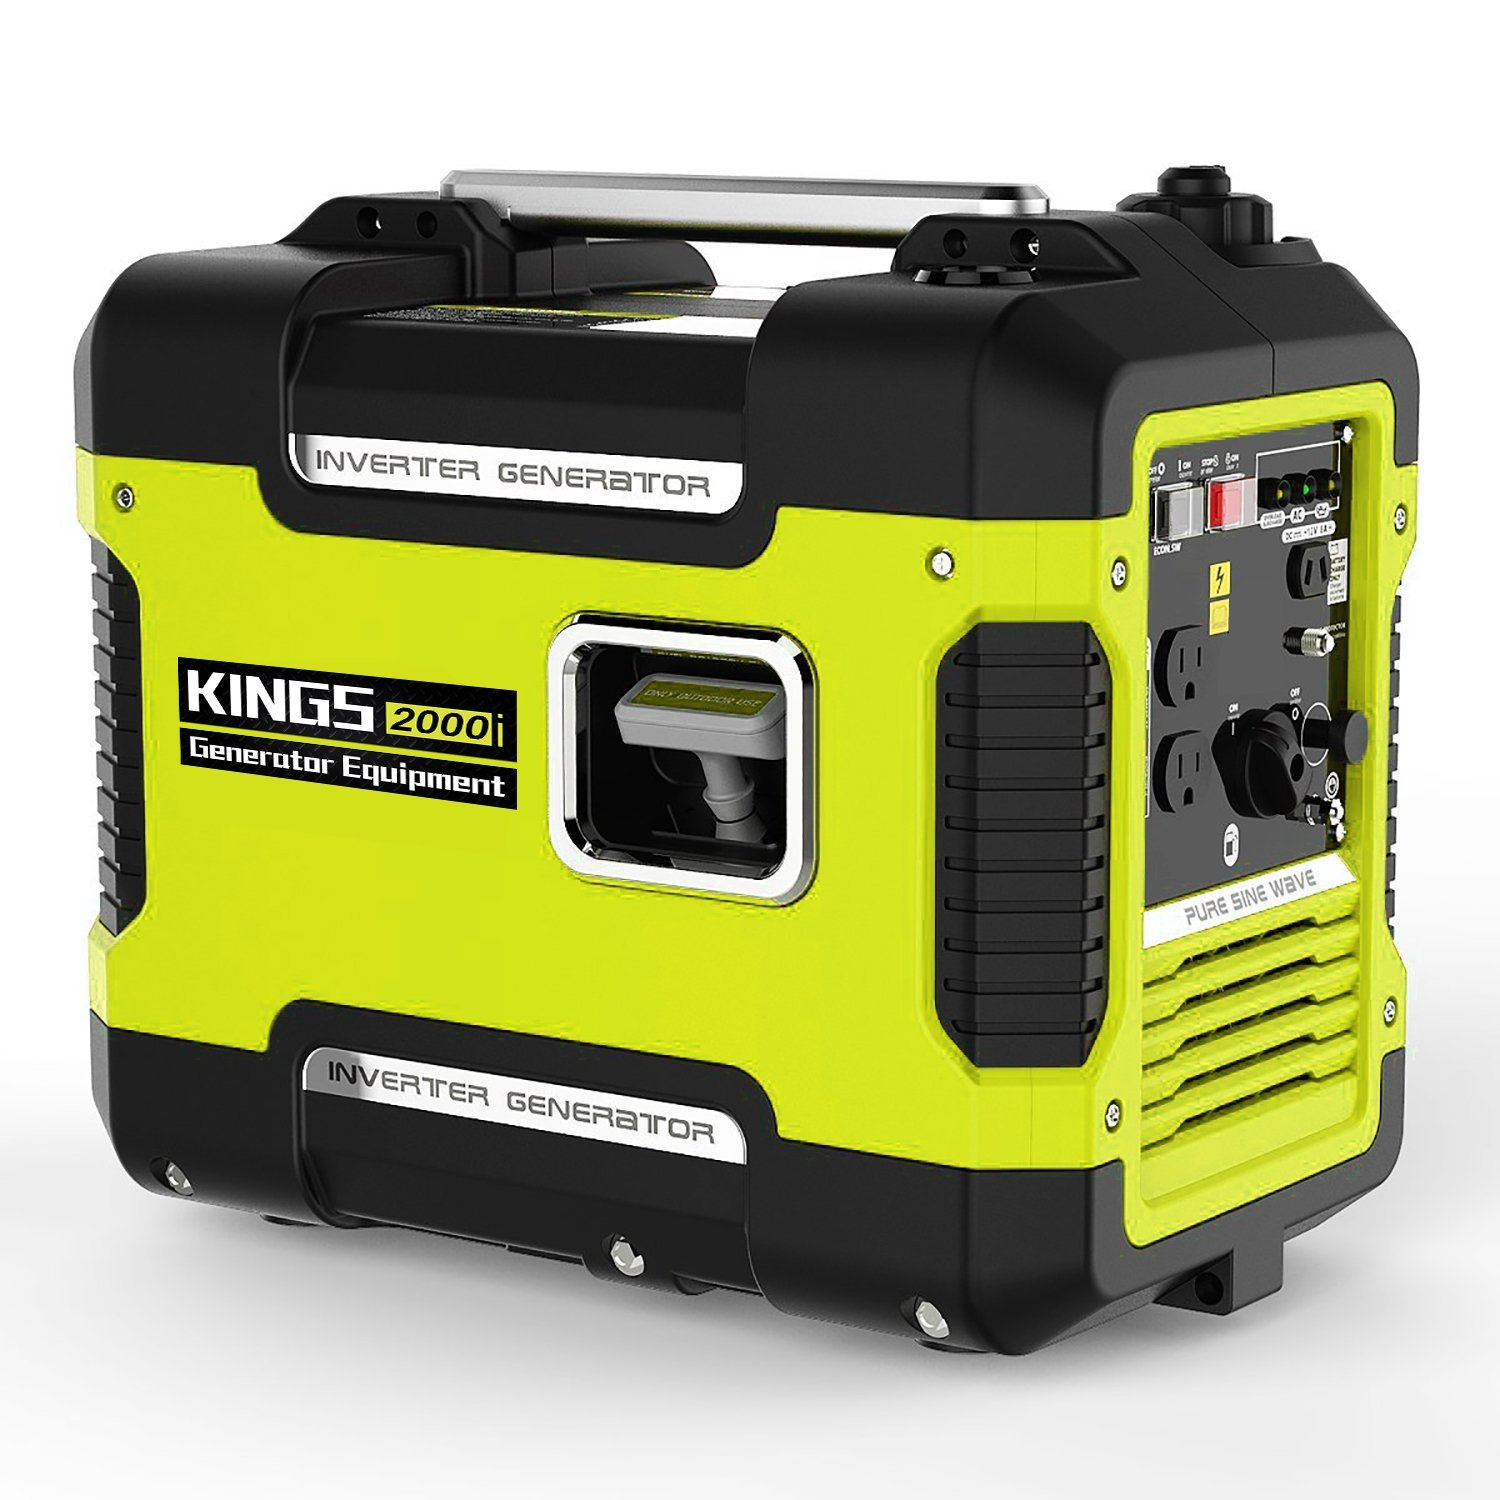 2Kva Kings Generator cheap hyundai inverter generator, find hyundai inverter